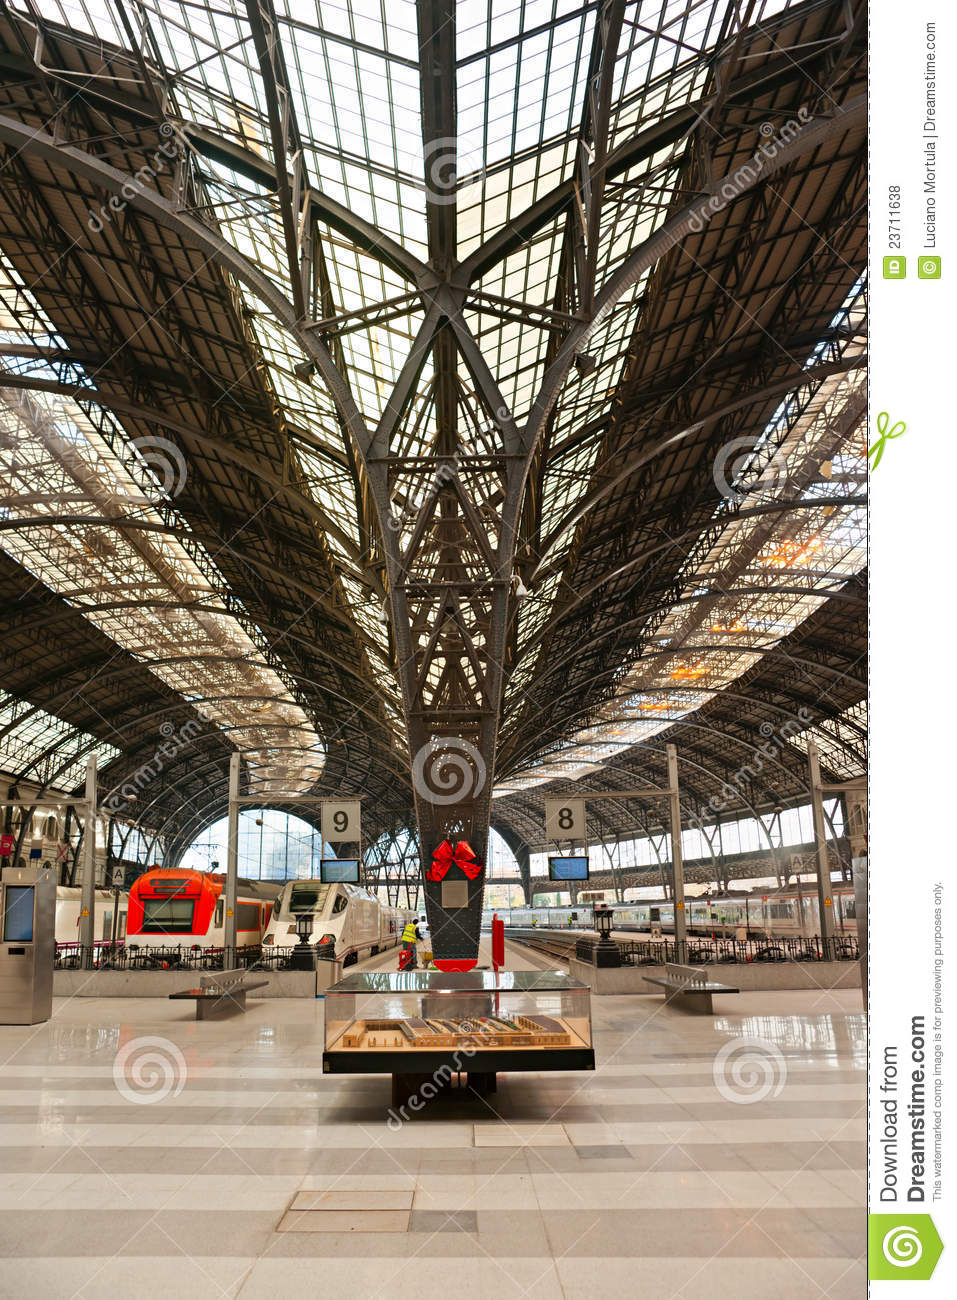 Barcelona Train Station, Spain. Royalty Free Stock Photos ...